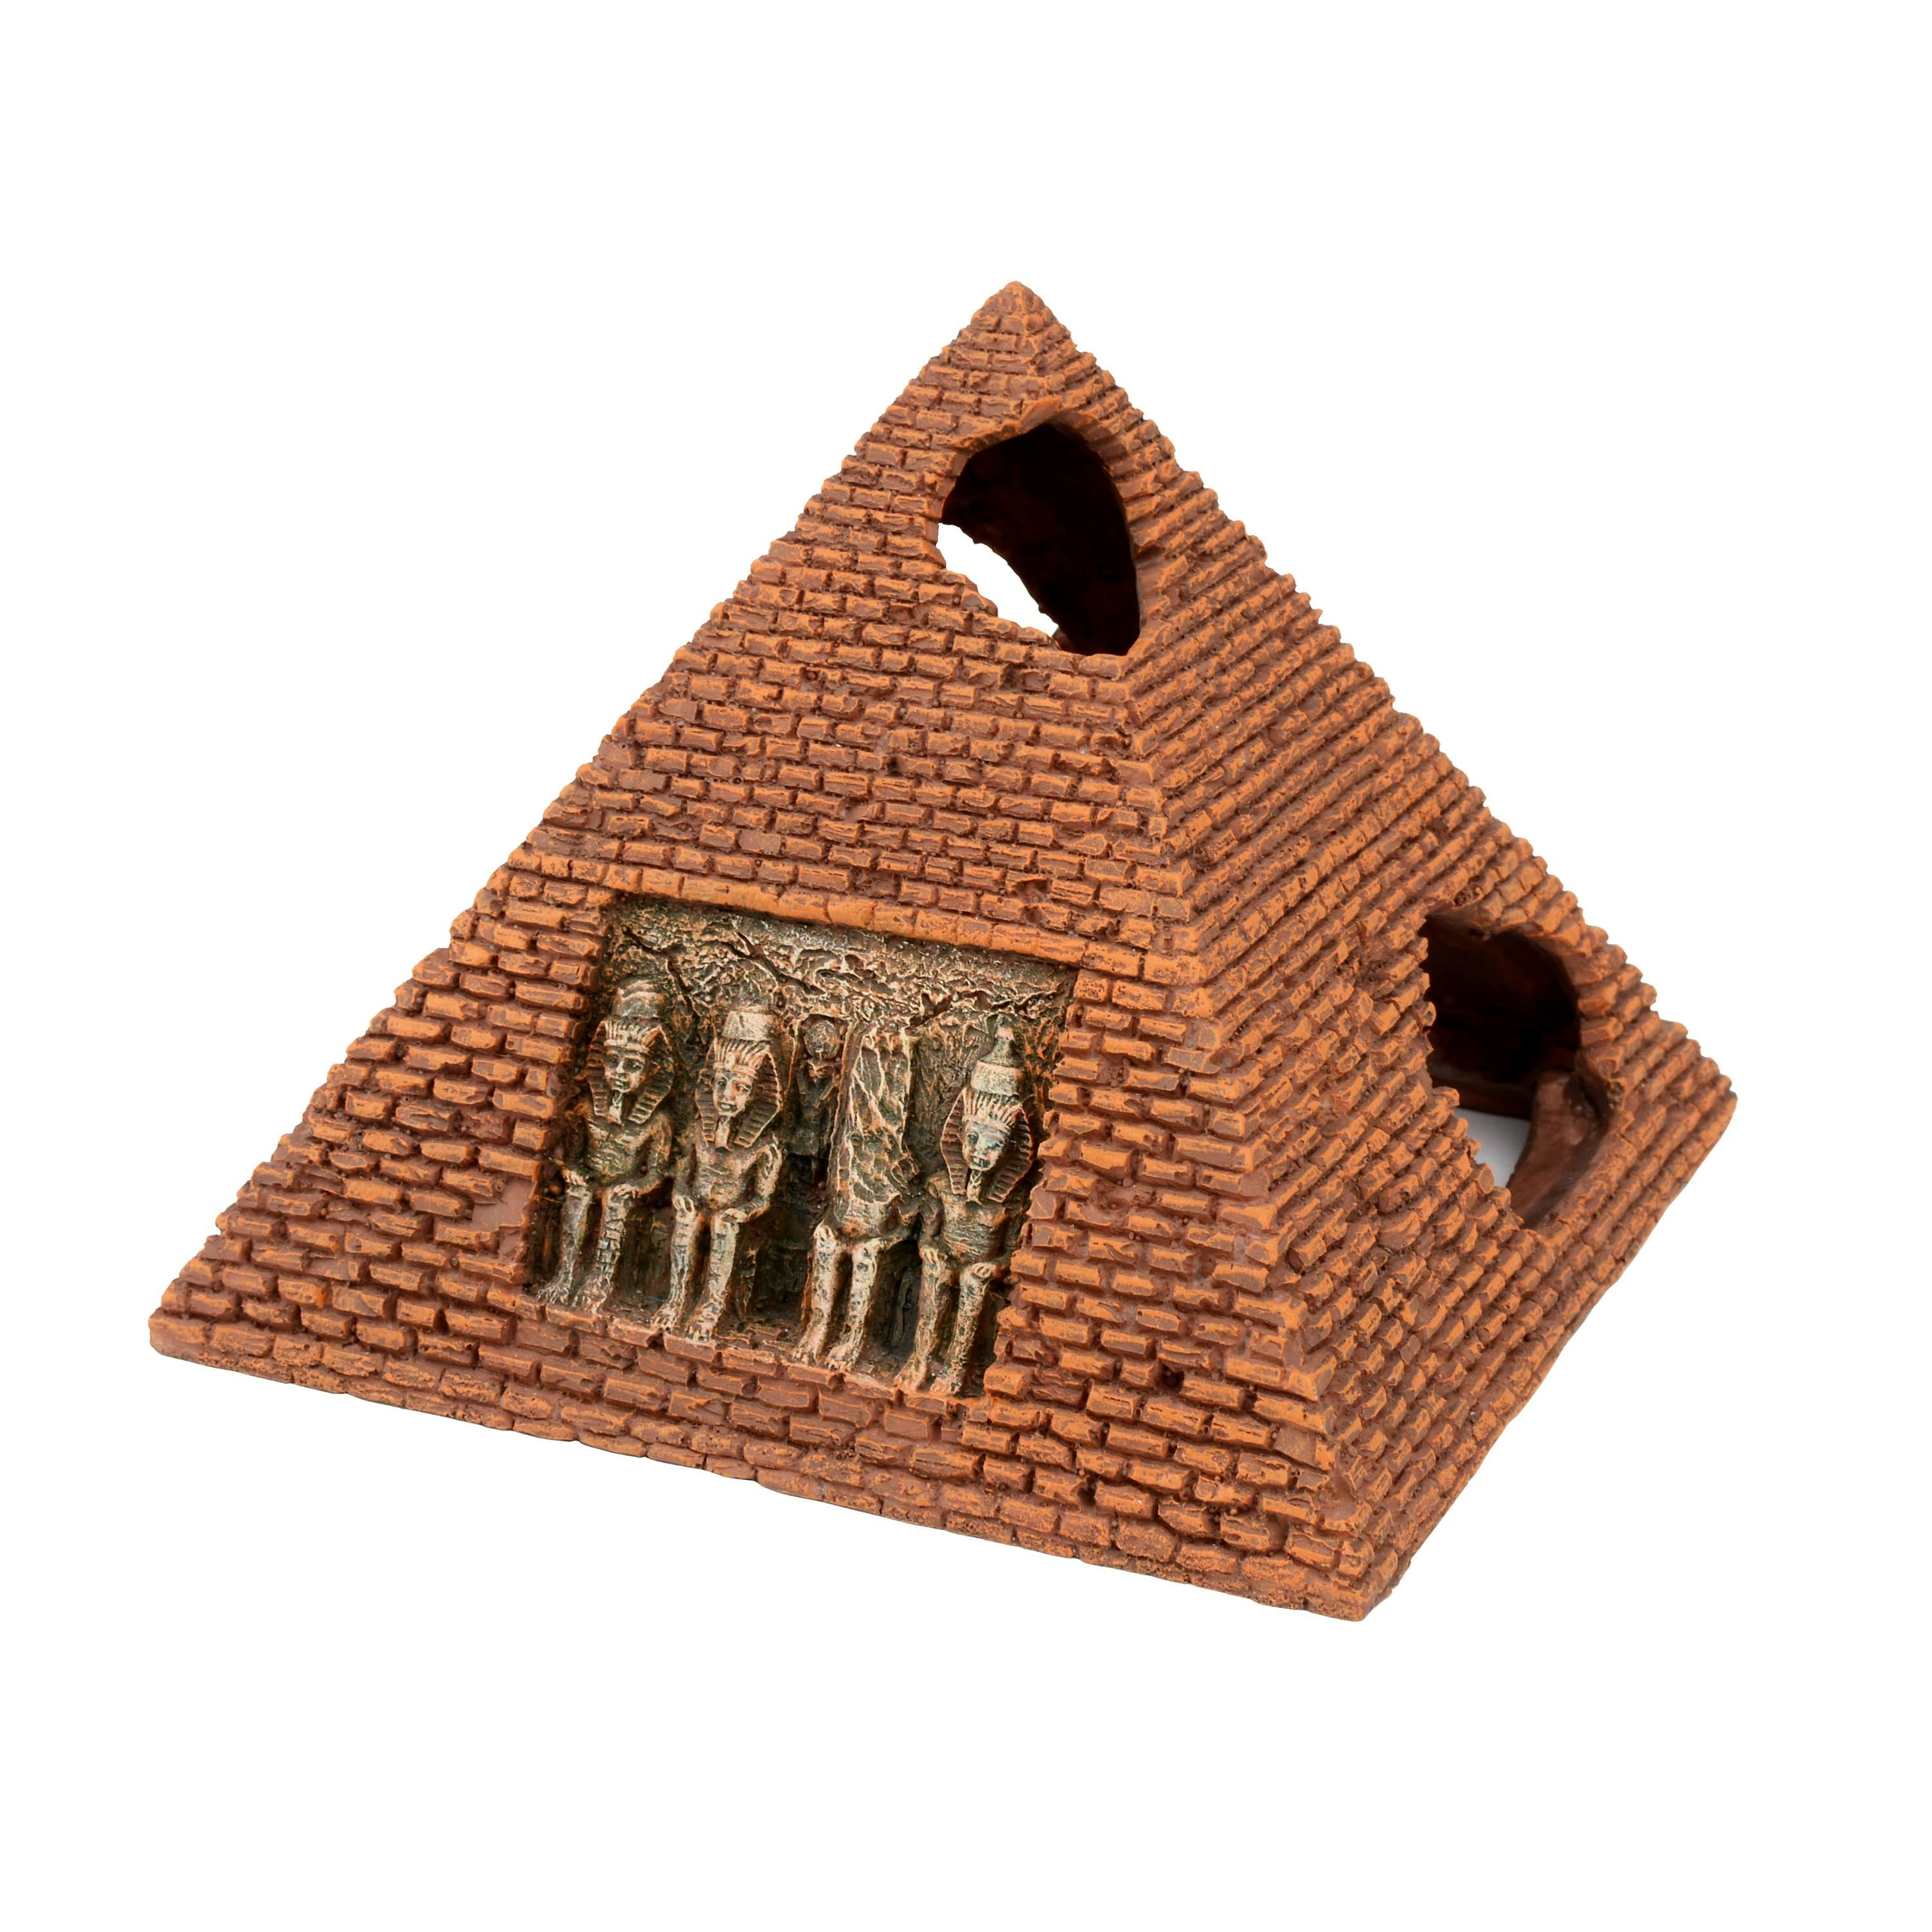 AQUAVIE Egypte Pyramide décoration aquarium 16 x 16 x 12,5 cm